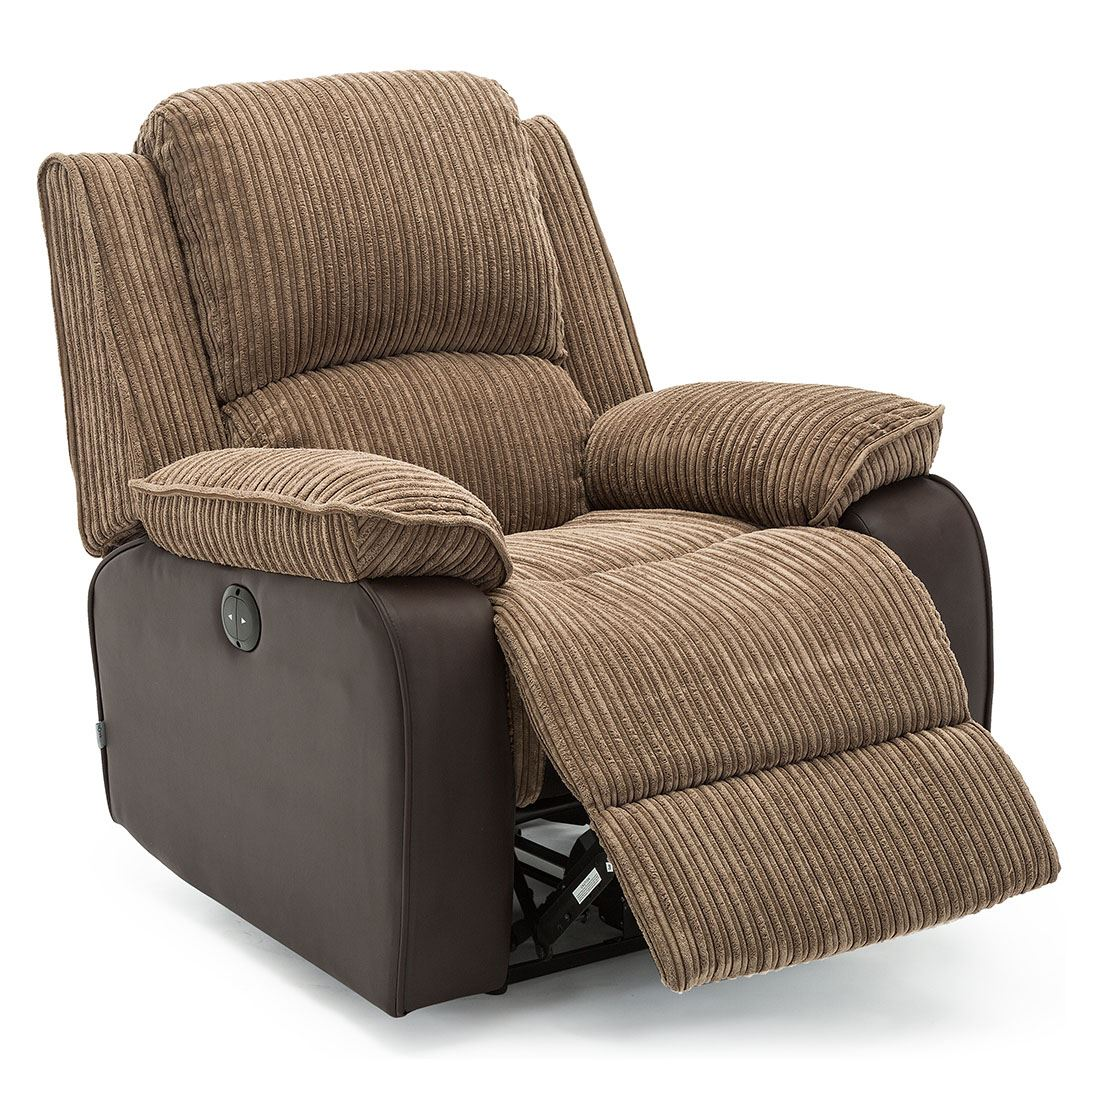 POSTANA JUMBO CORD FABRIC POWER RECLINER ARMCHAIR ELECTRIC ...